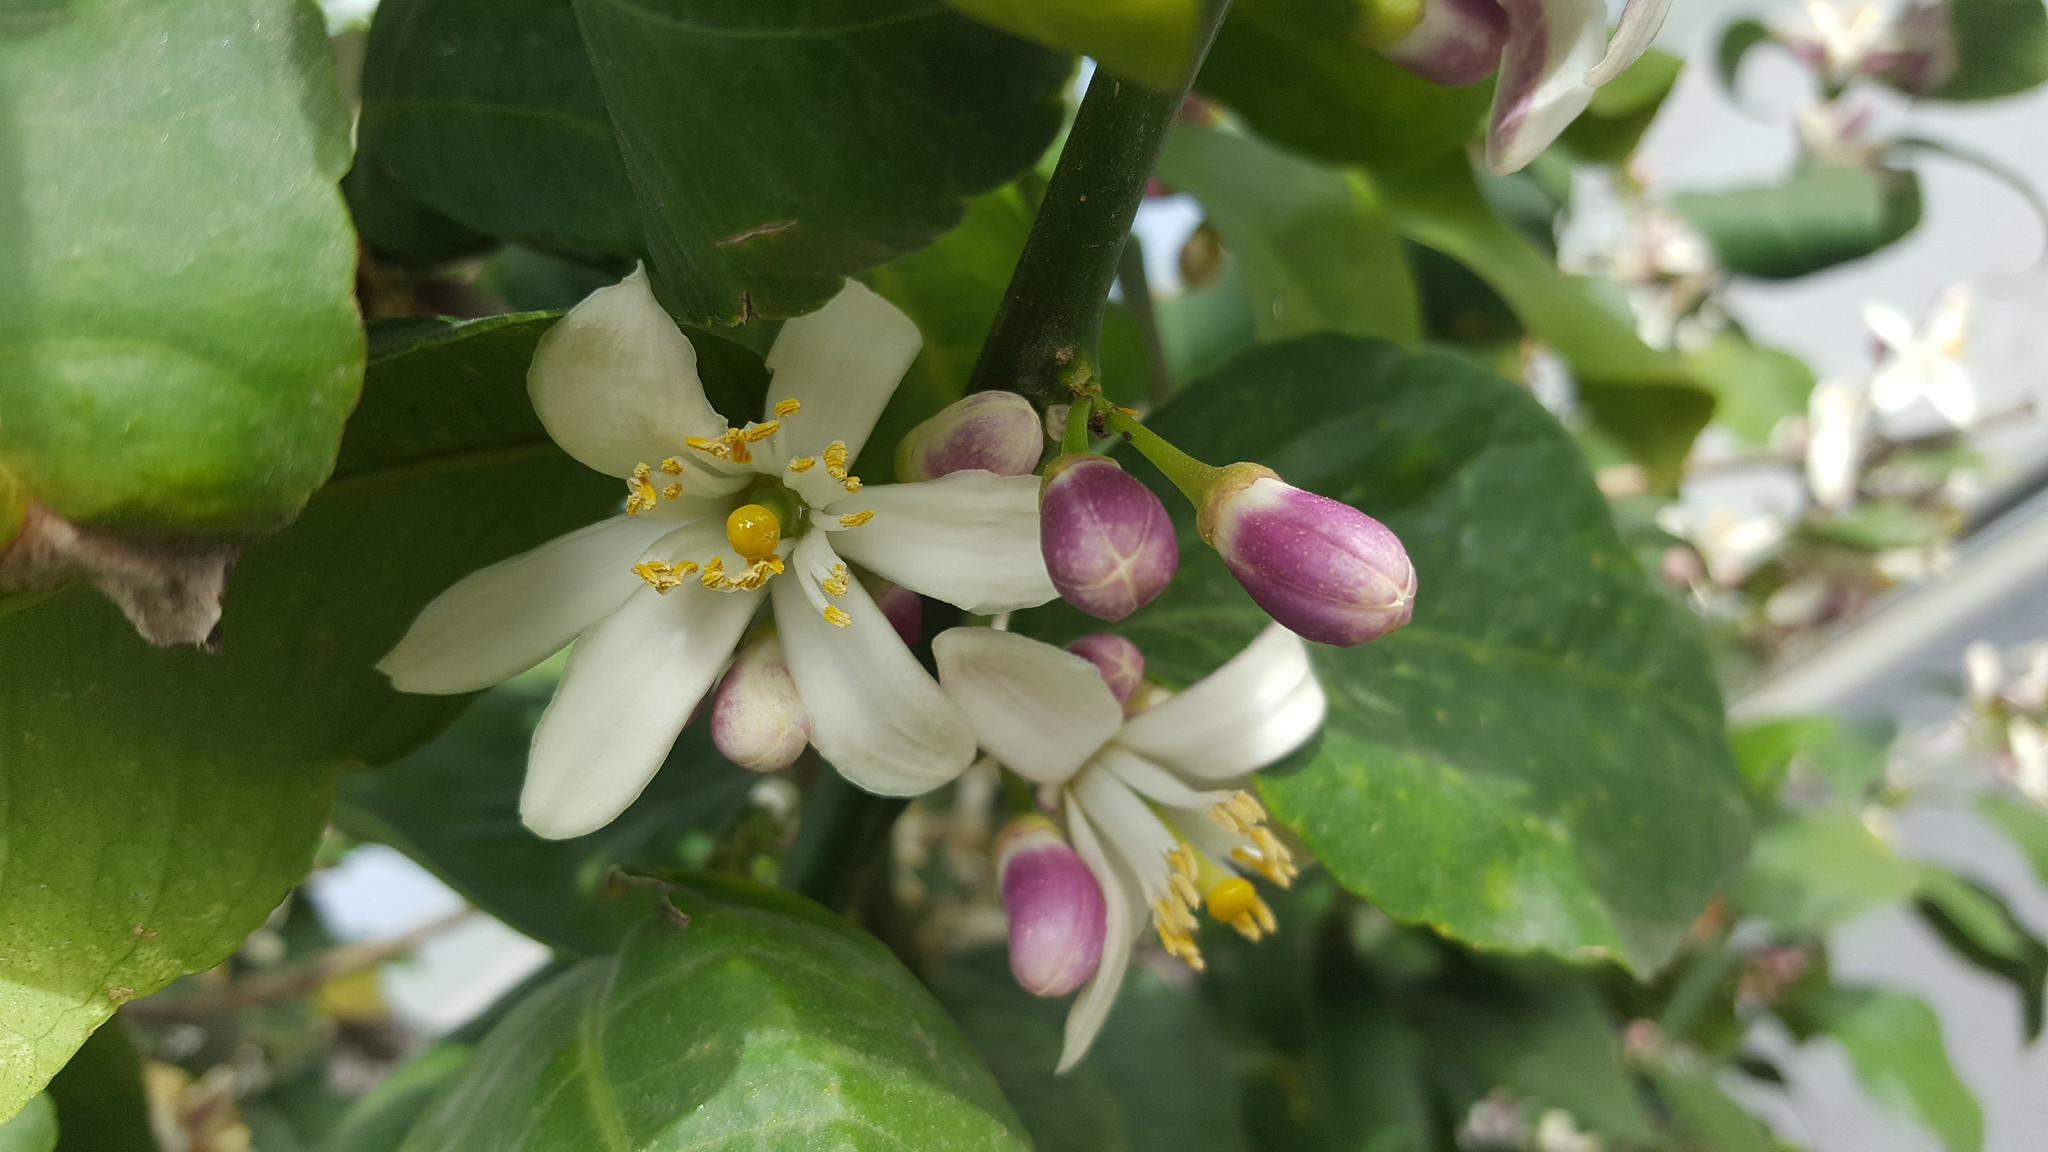 Image of citrus blossoms.